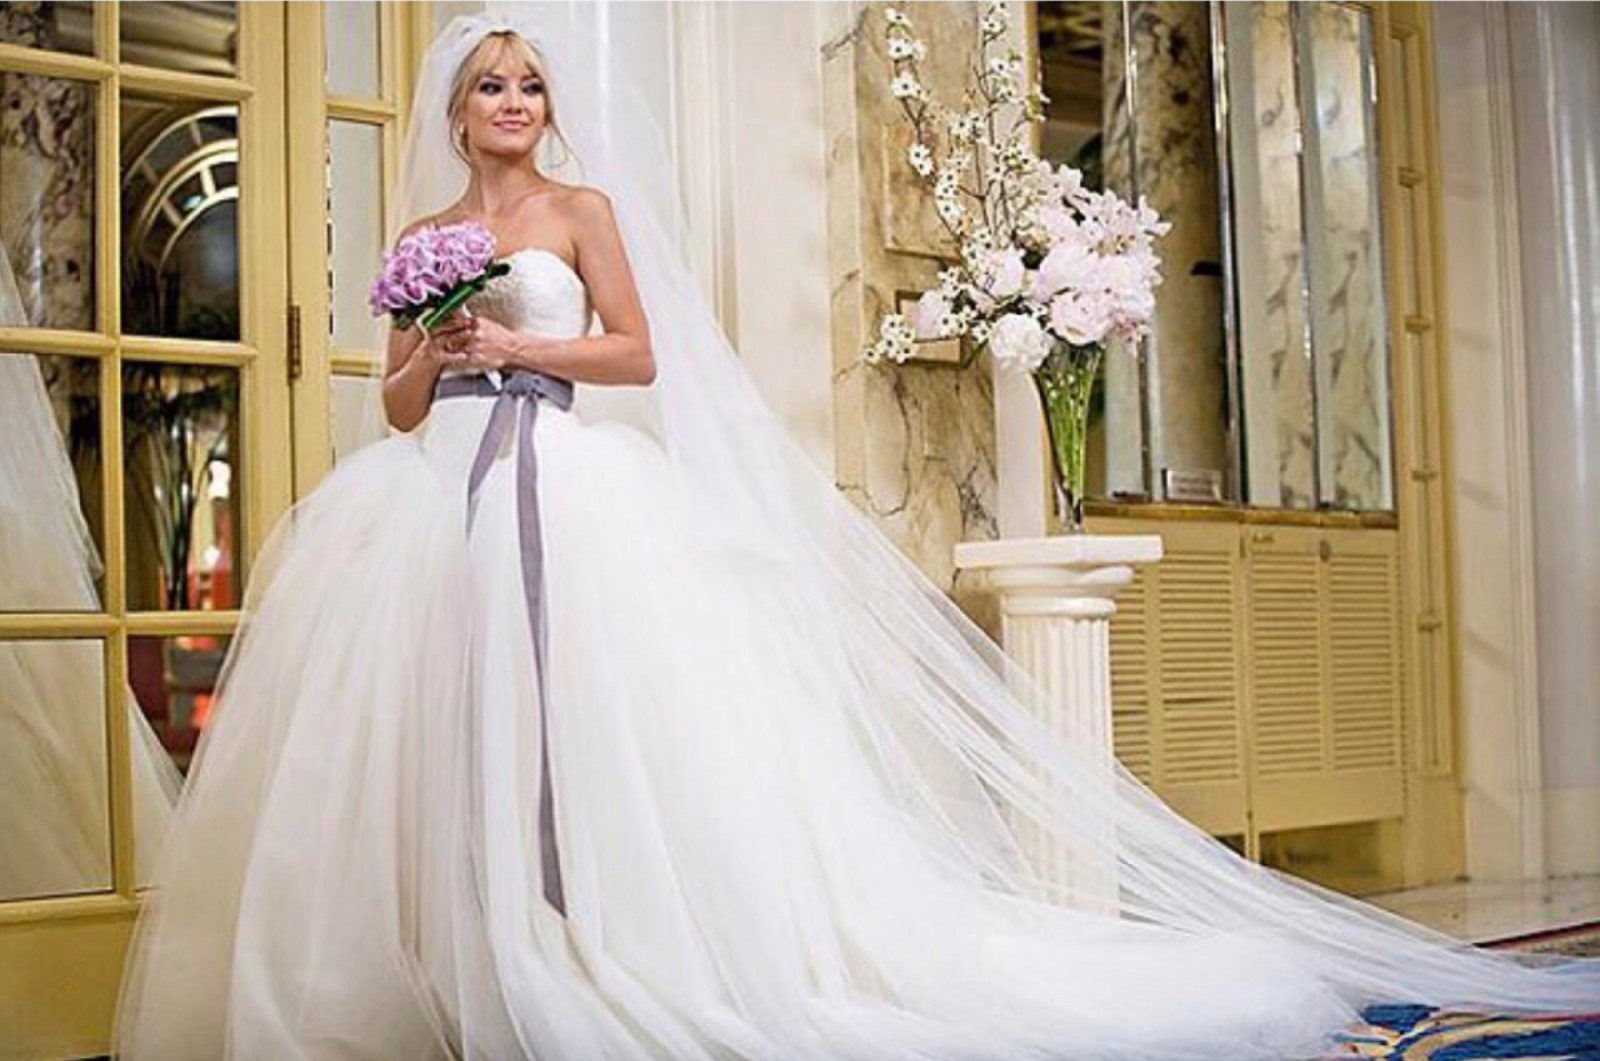 Bride Wars movie wedding dress